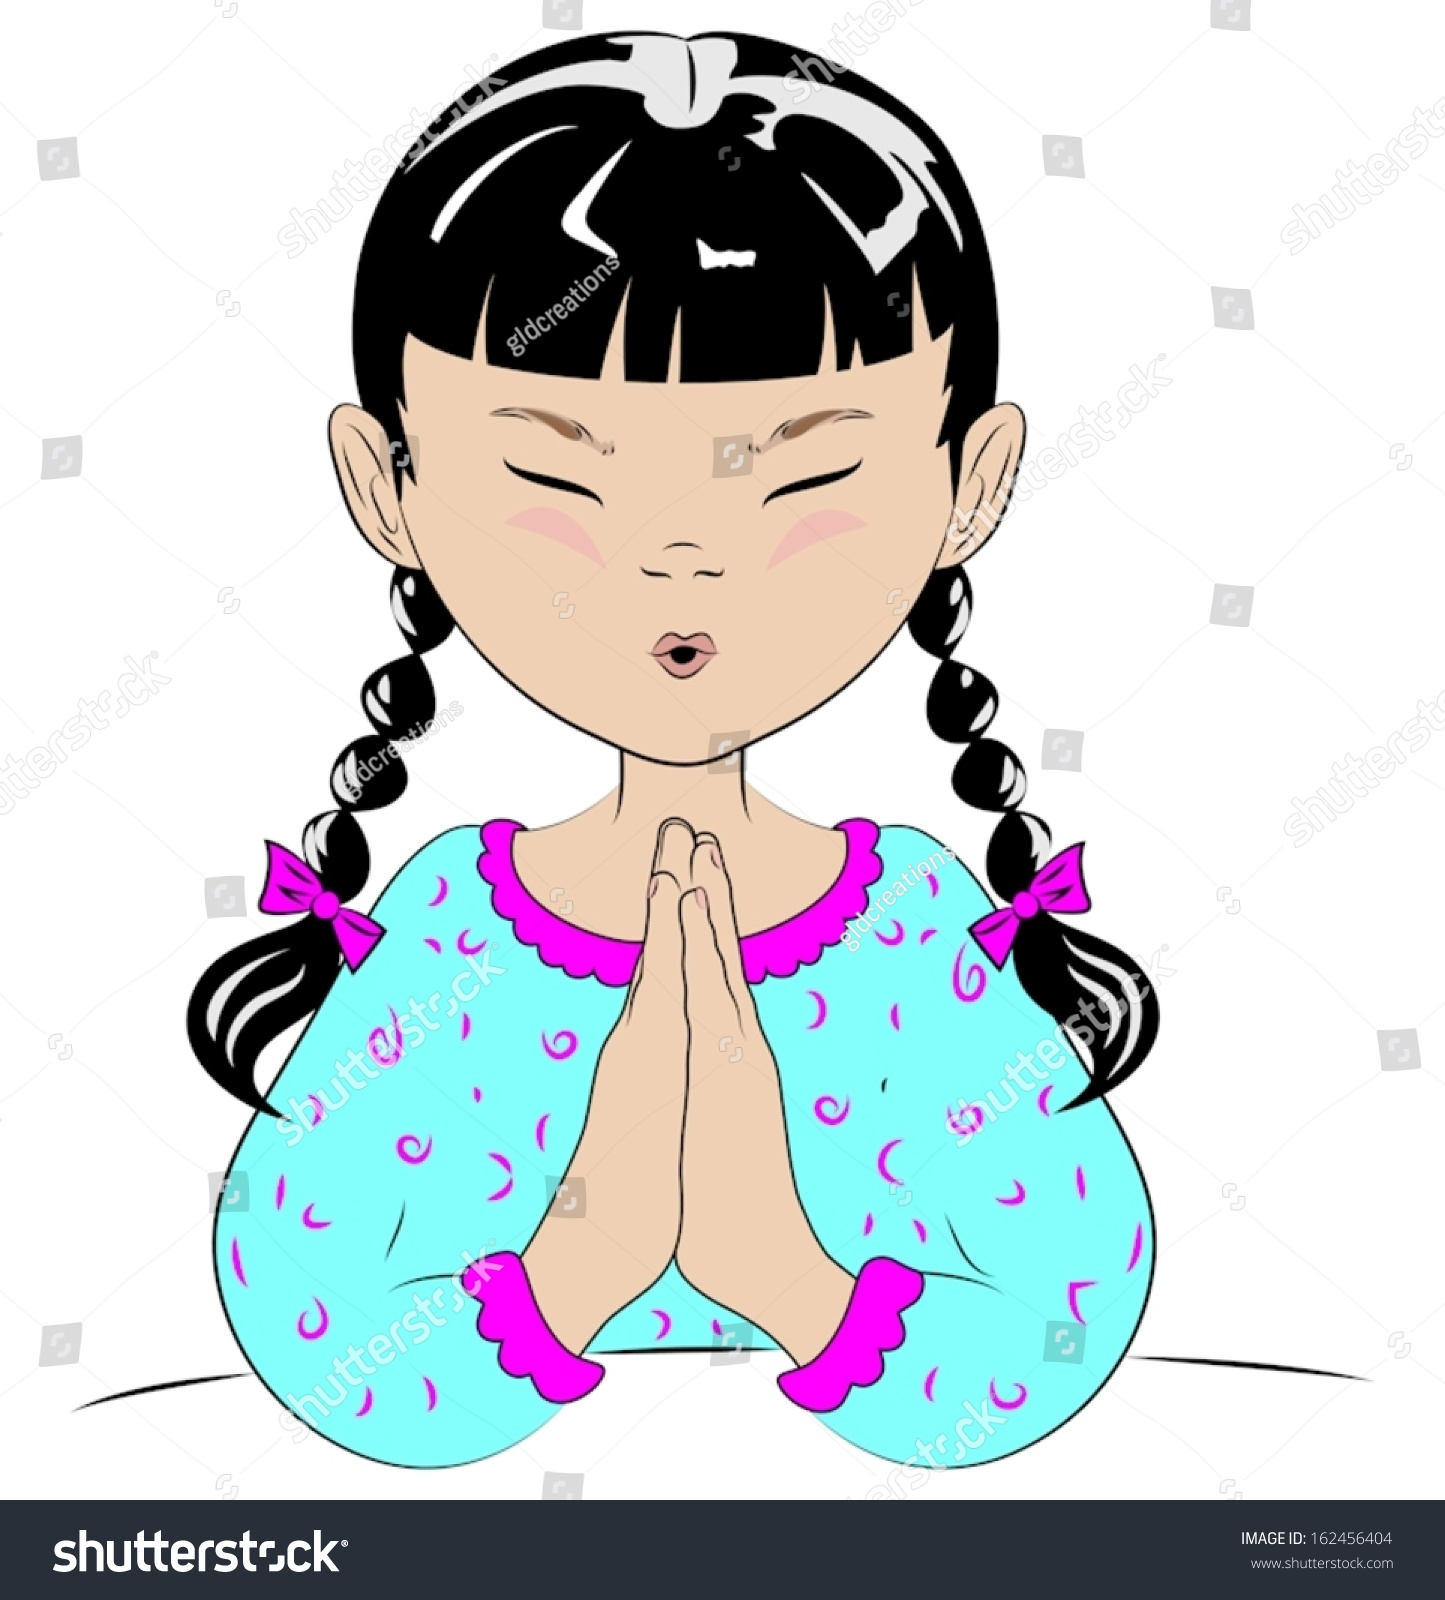 a vector drawing of a young girl with pigtails in her pajamas saying her prayers before she goes to bed 162456404 shutterstock